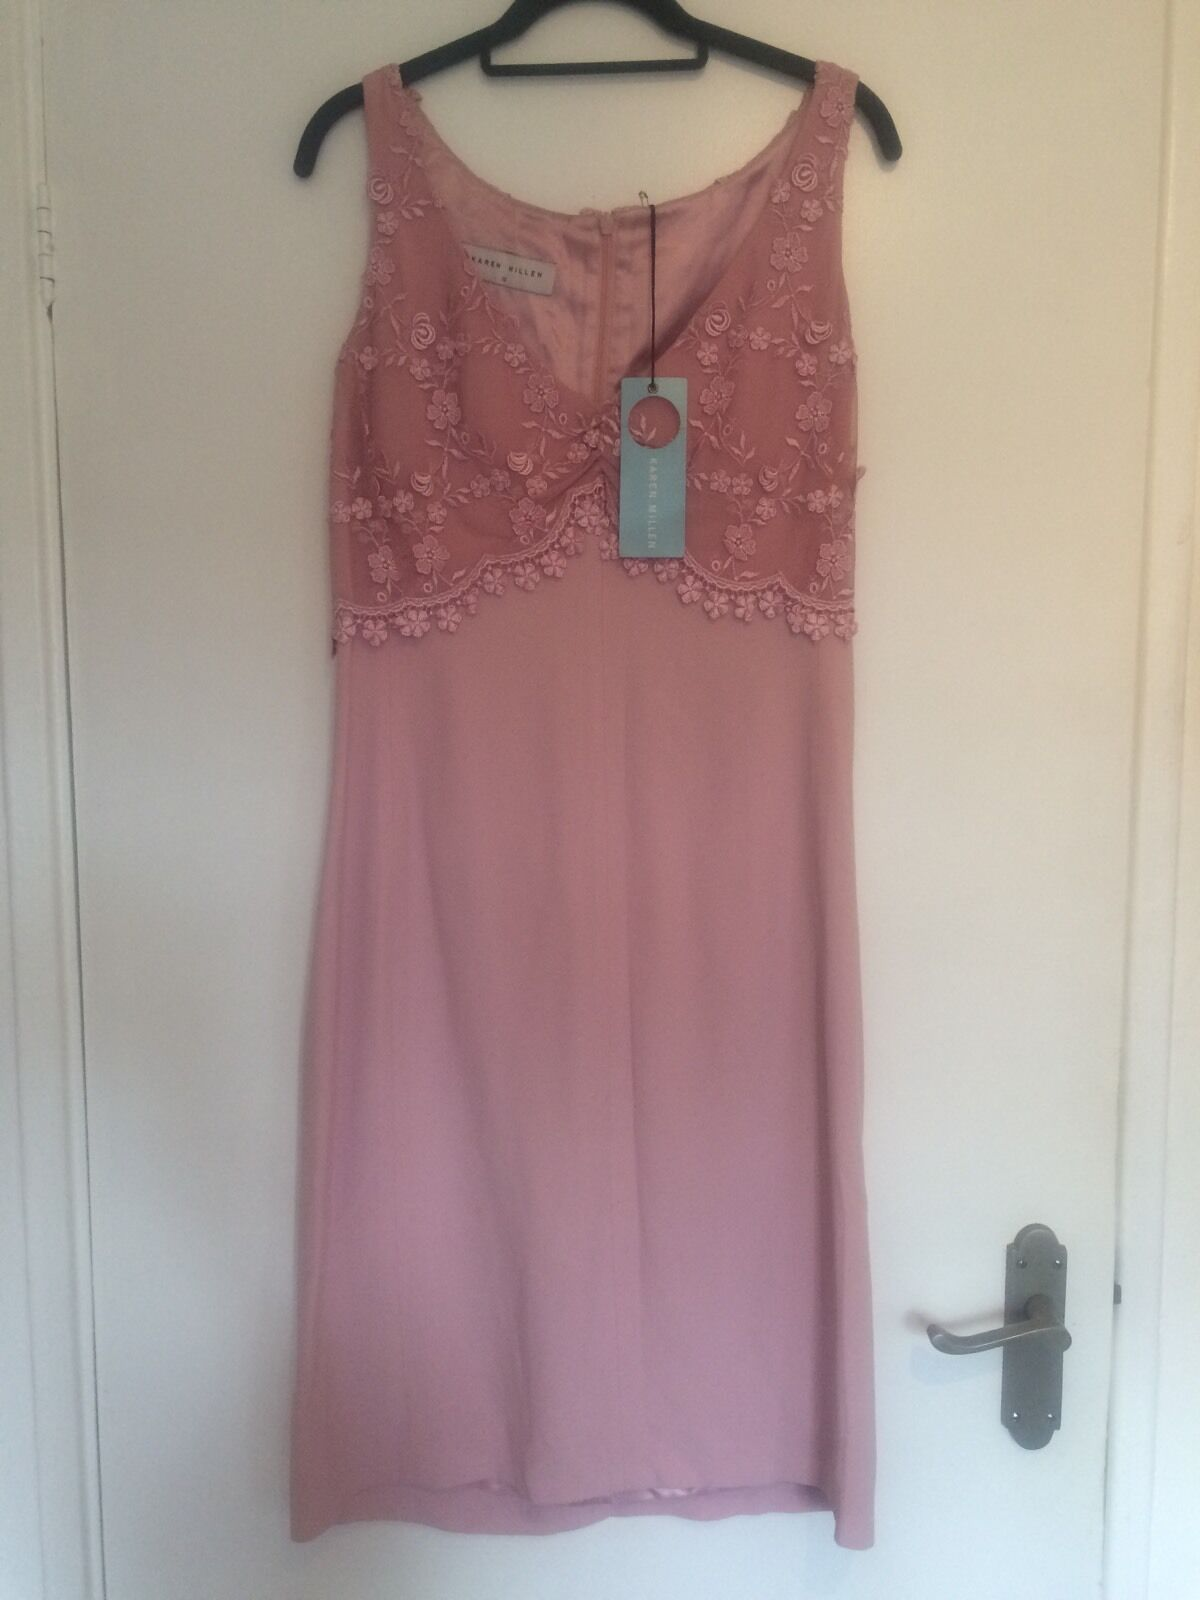 93a8dc9531 Karen Millen Pink Dress Size 12 New With Tag nzqyra23053-Dresses ...